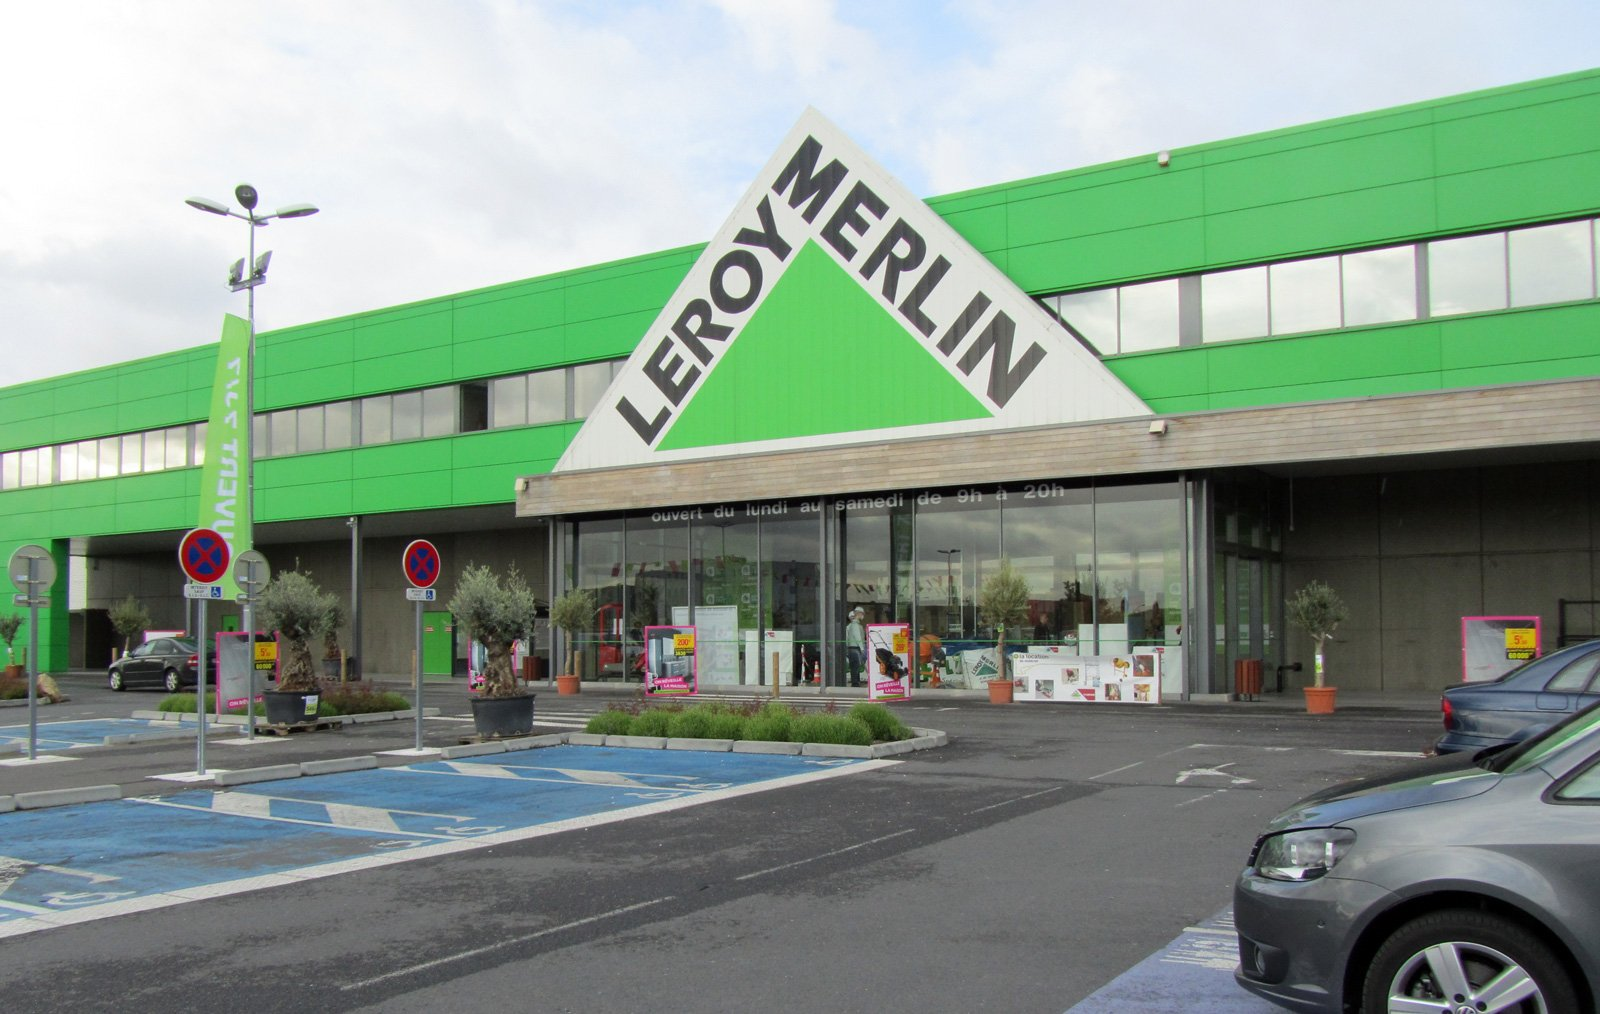 Leroy Merlin Magasin En France A Behind The Scenes Look At Leroy Merlin S Digital Transformation